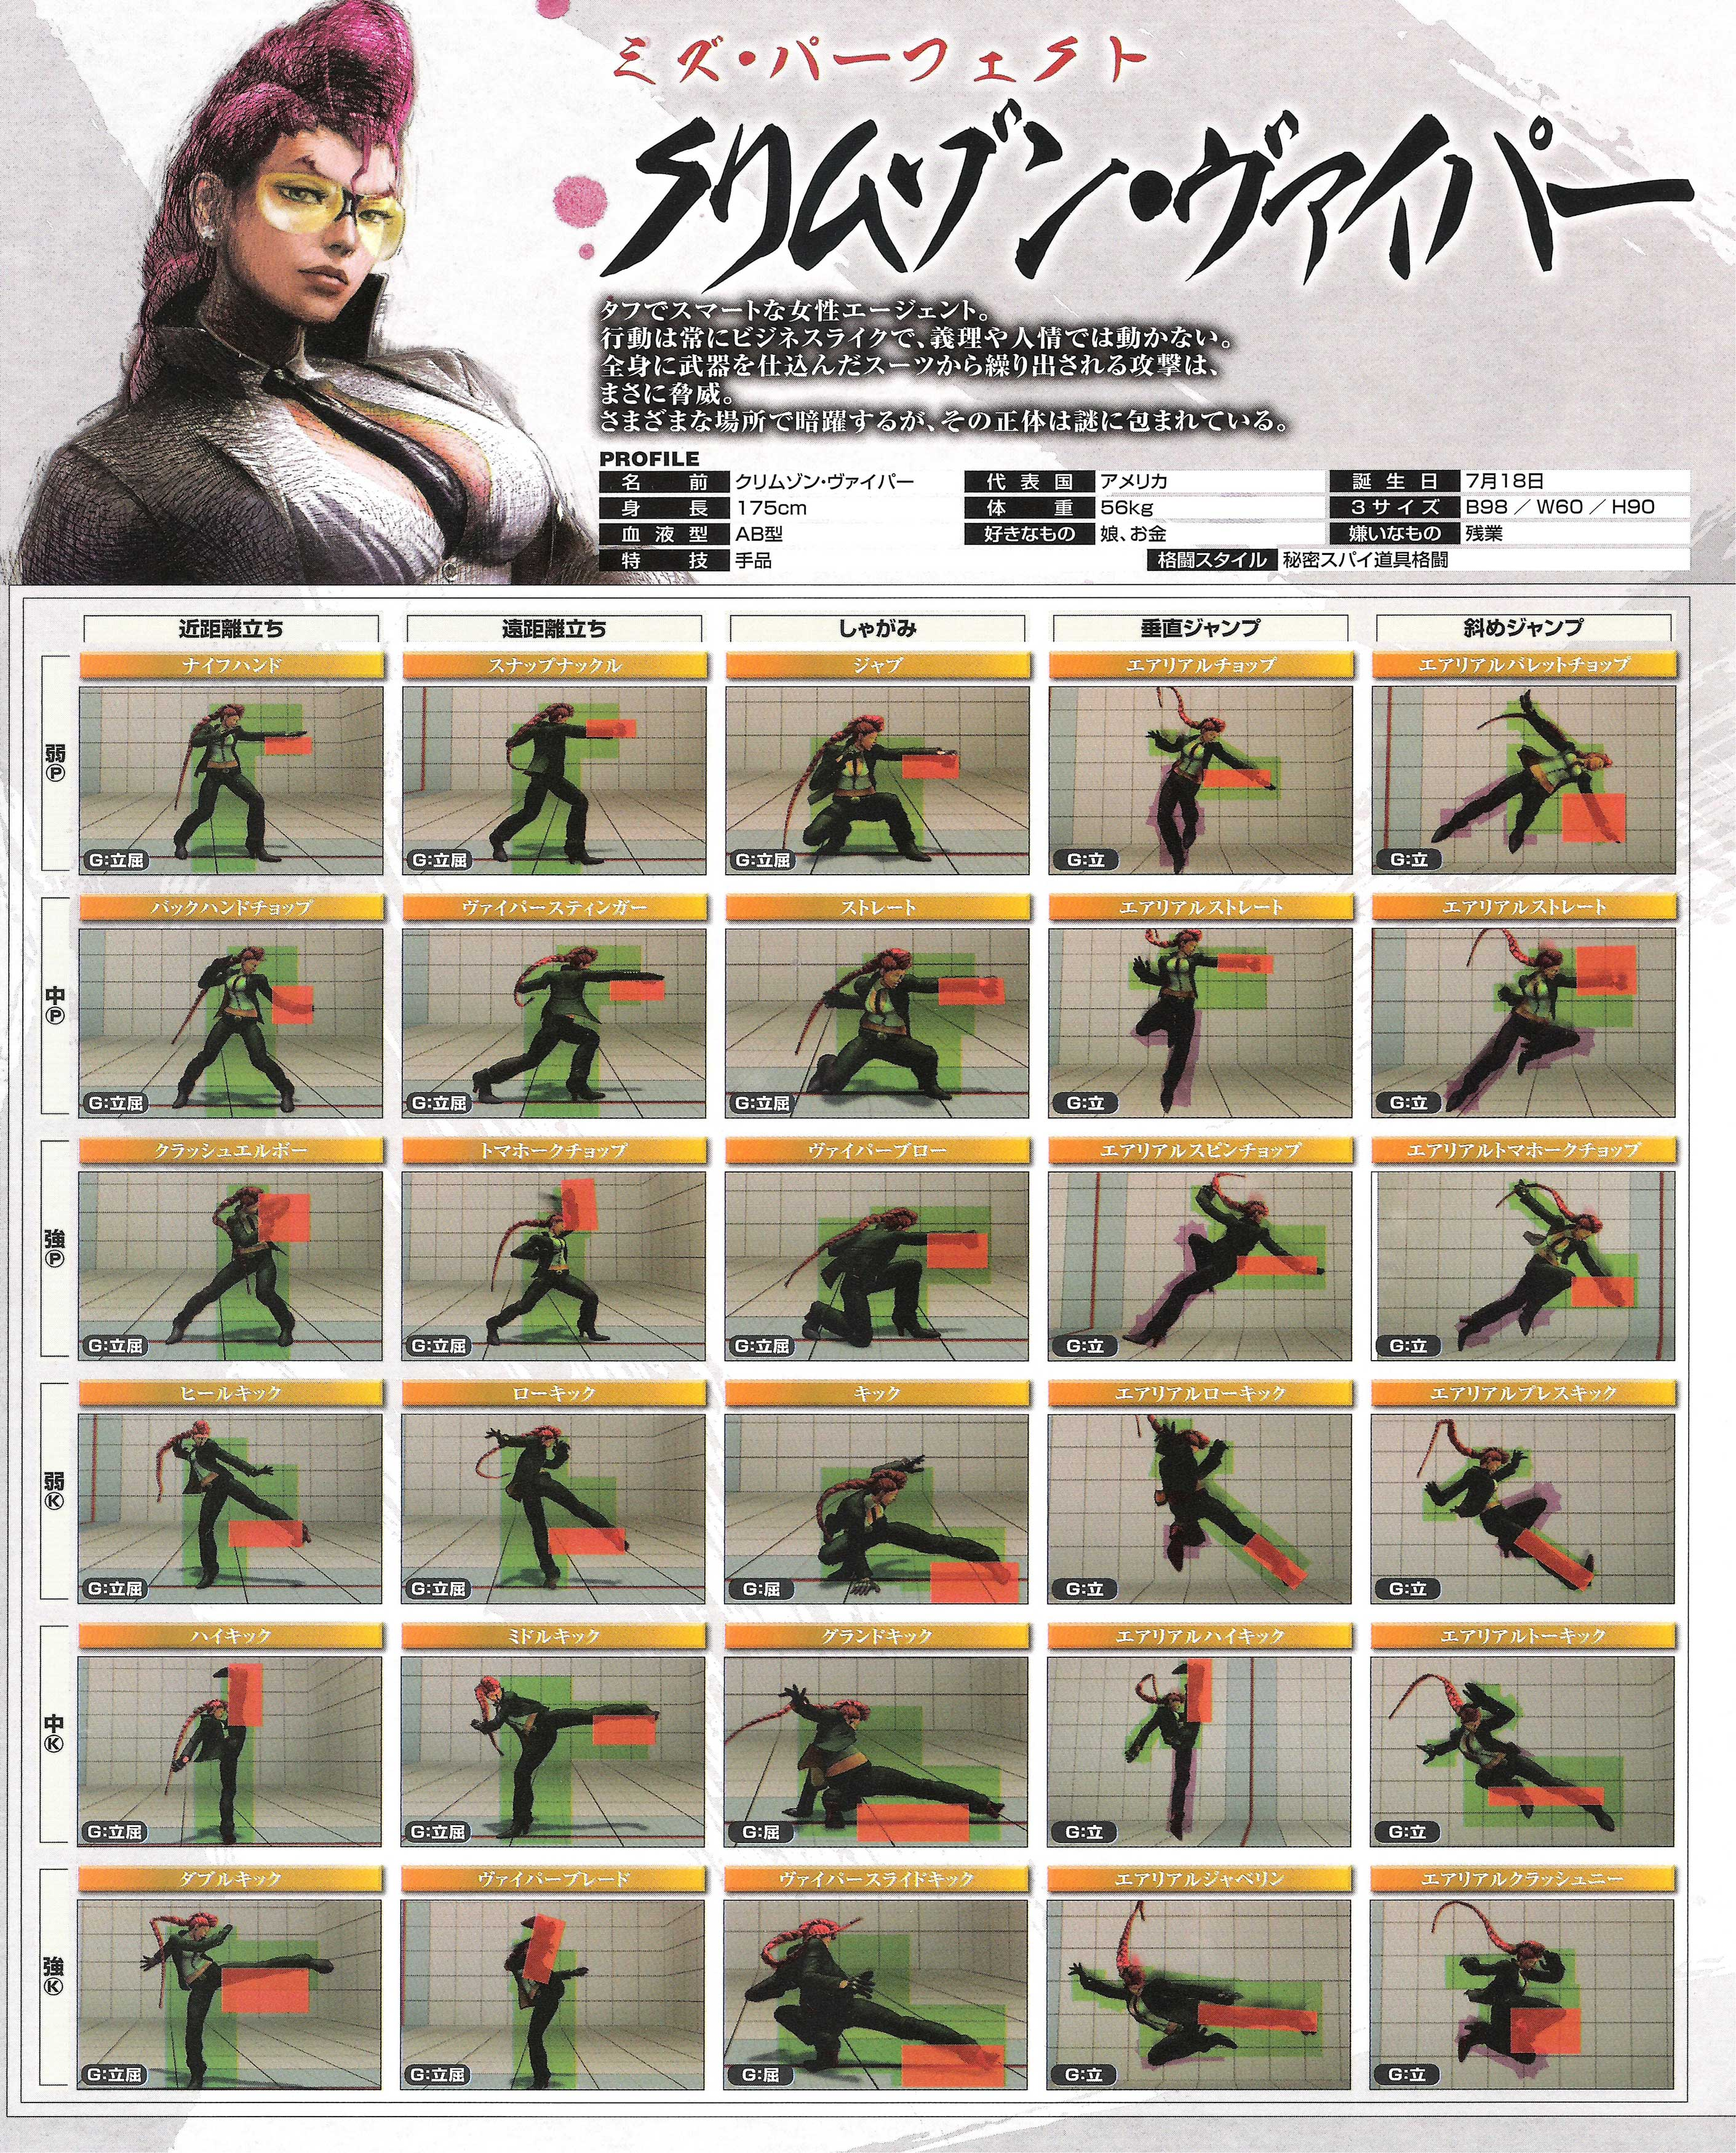 C. Viper's hit box information for Super Street Fighter 4 Arcade Edition image #1